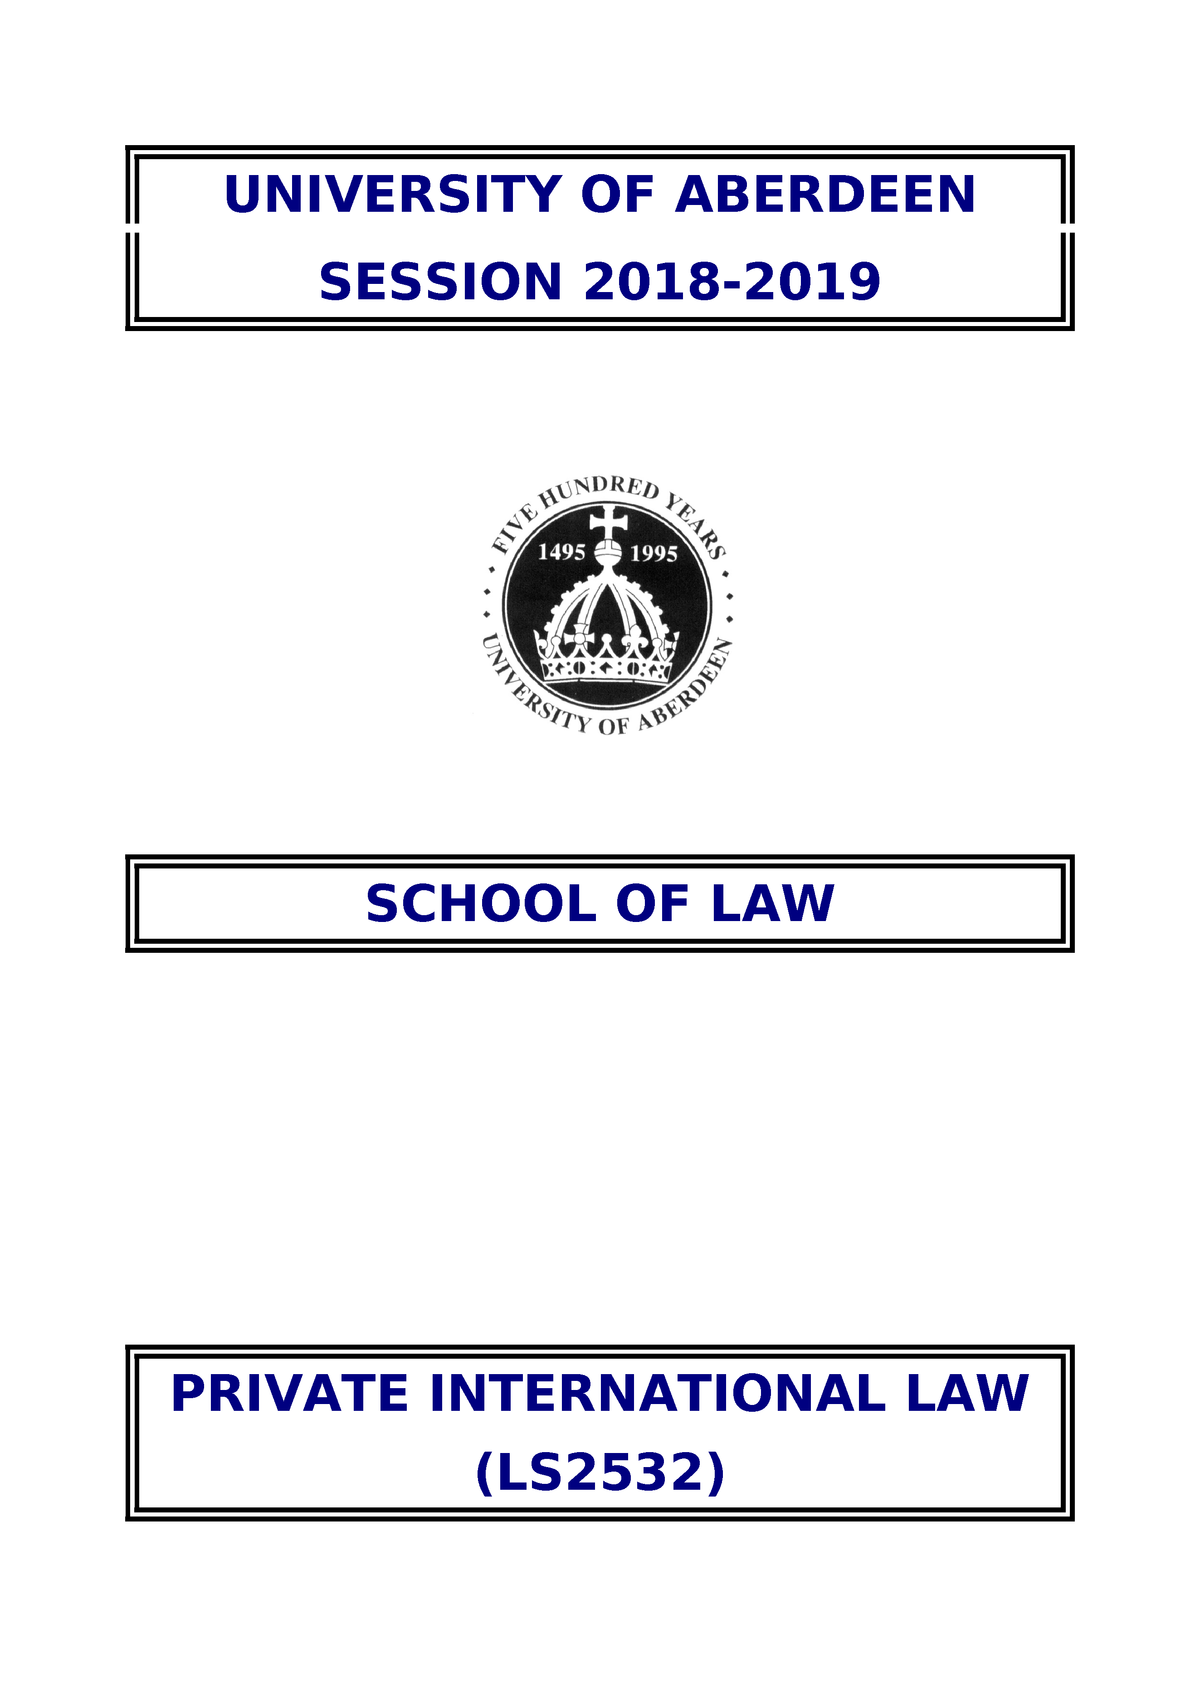 Ls2532 handout 2018-2019 - Private International law - Abdn